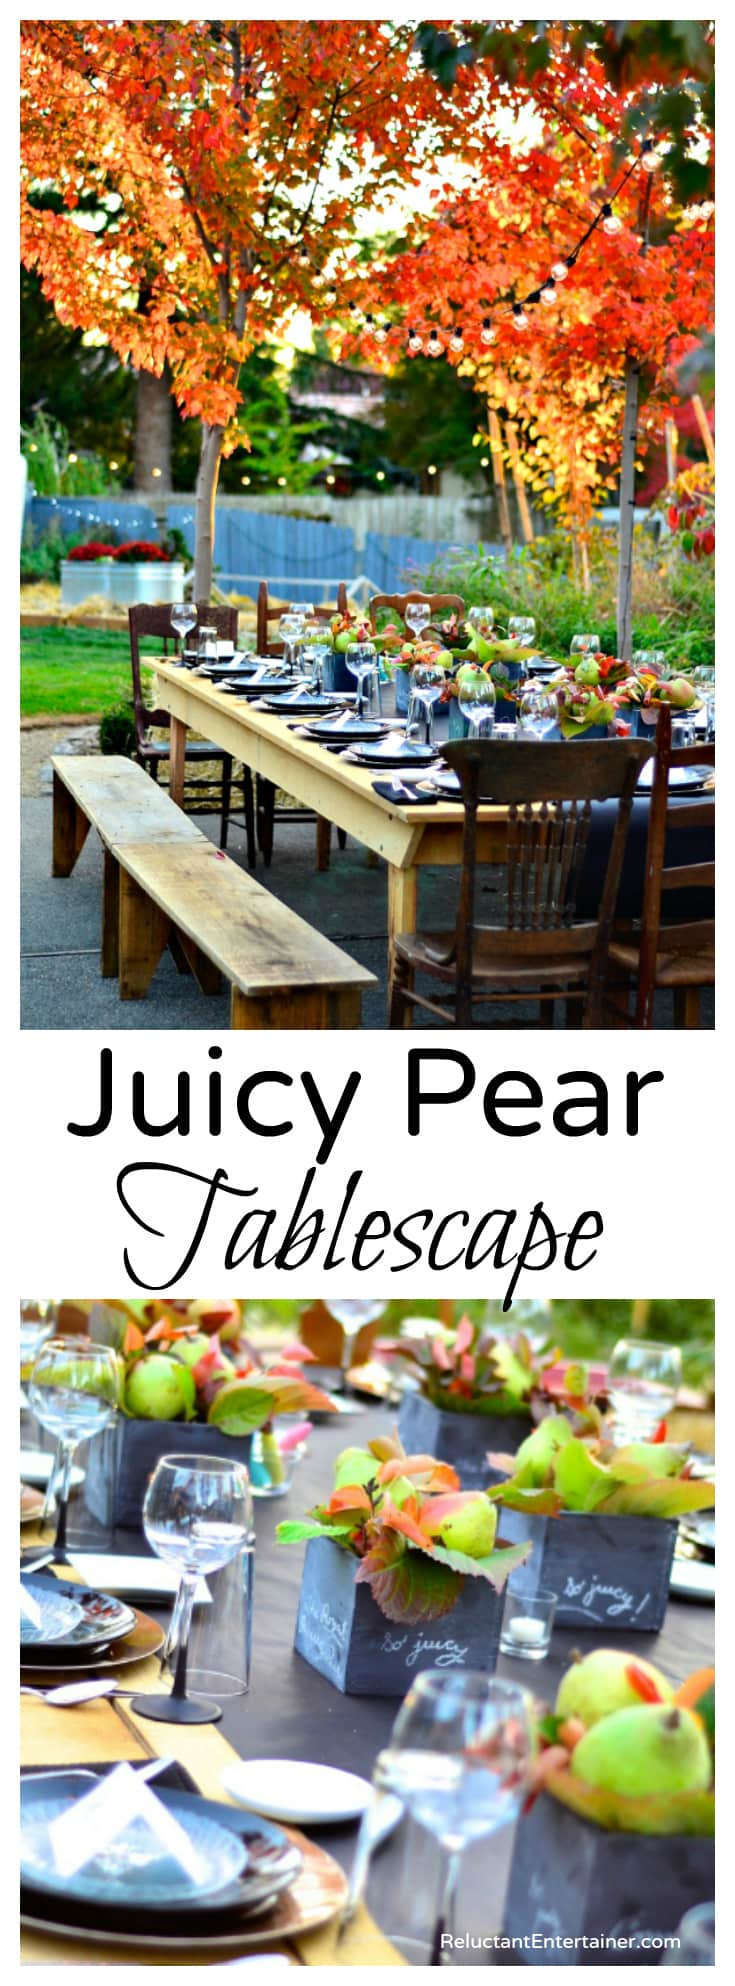 Juicy Pear Tablescape + Bacon Pear Cobb Salad Recipe